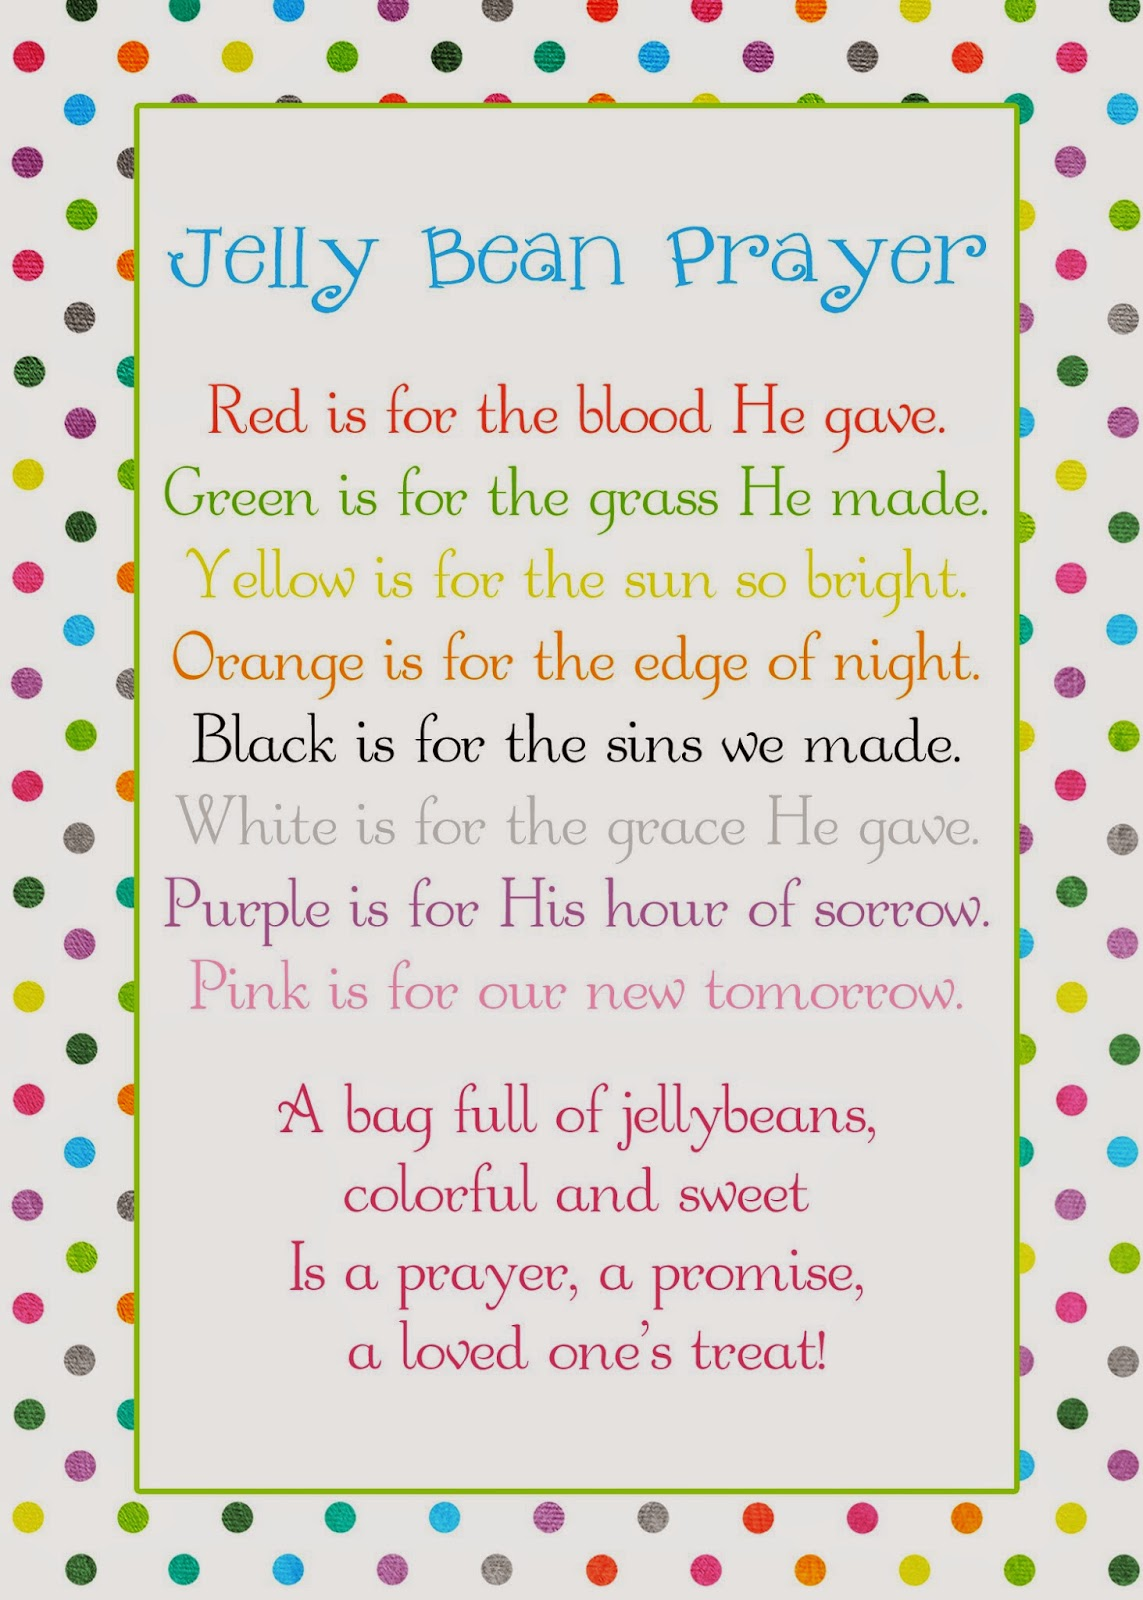 Easter Poems Speeches Photo Album - The Miracle of Easter